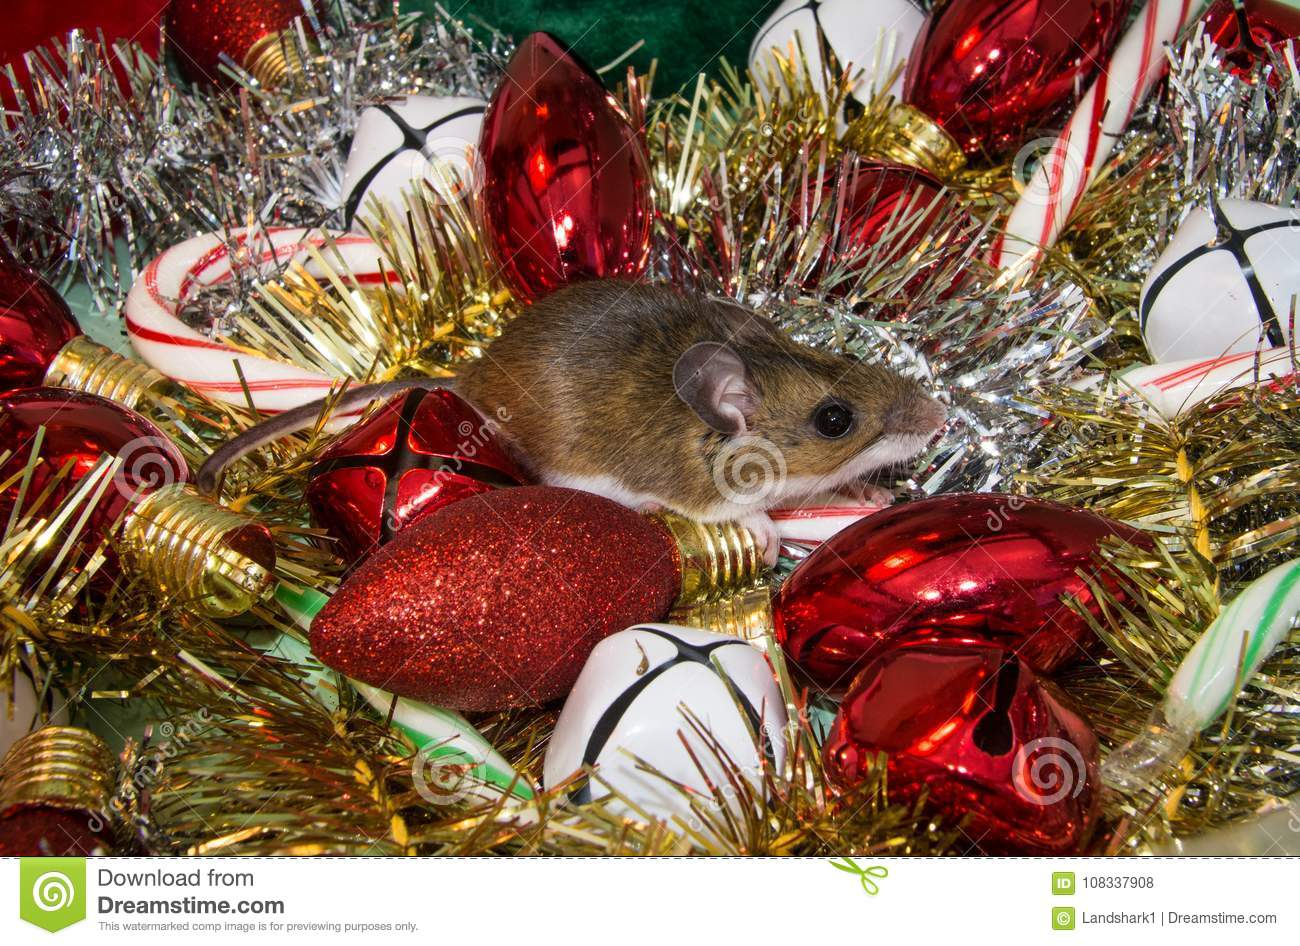 a side view of a house mouse sitting on xmas decorations white and red bells gold and silver garland red bulbs and green and red and green candy canes